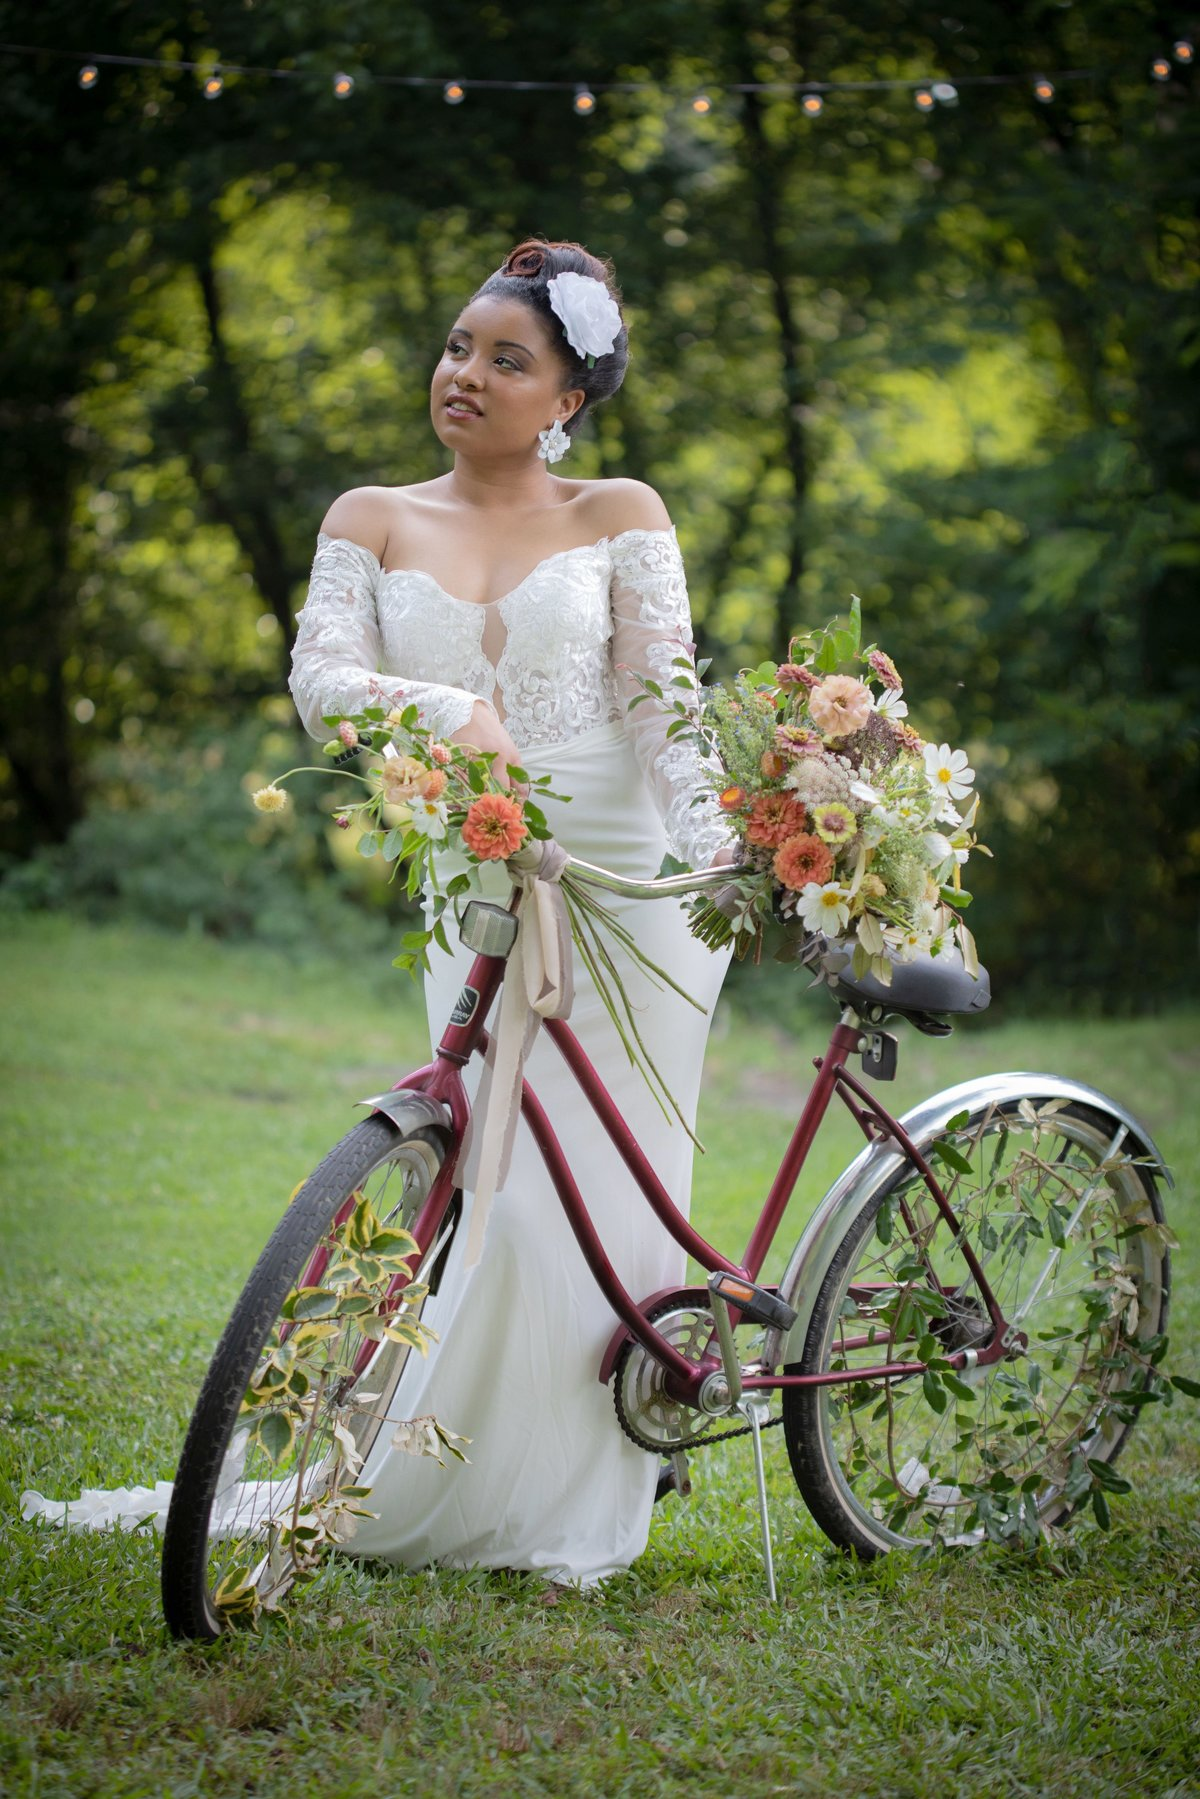 Bride posing with vintage bicycle